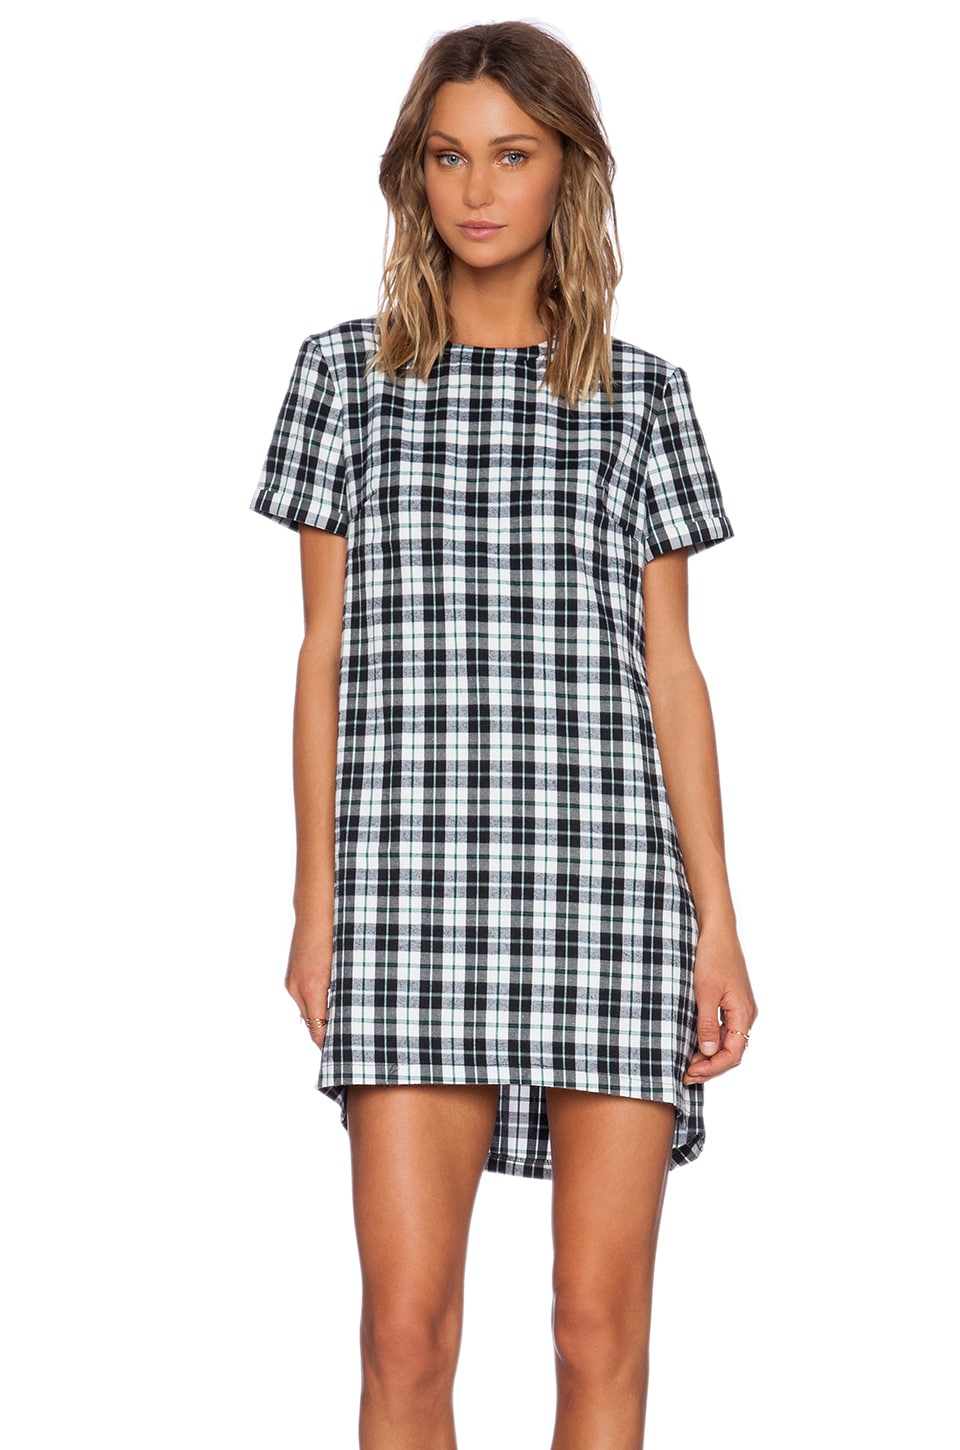 The Fifth Label Chain of Fools T-Shirt Dress in Tartan